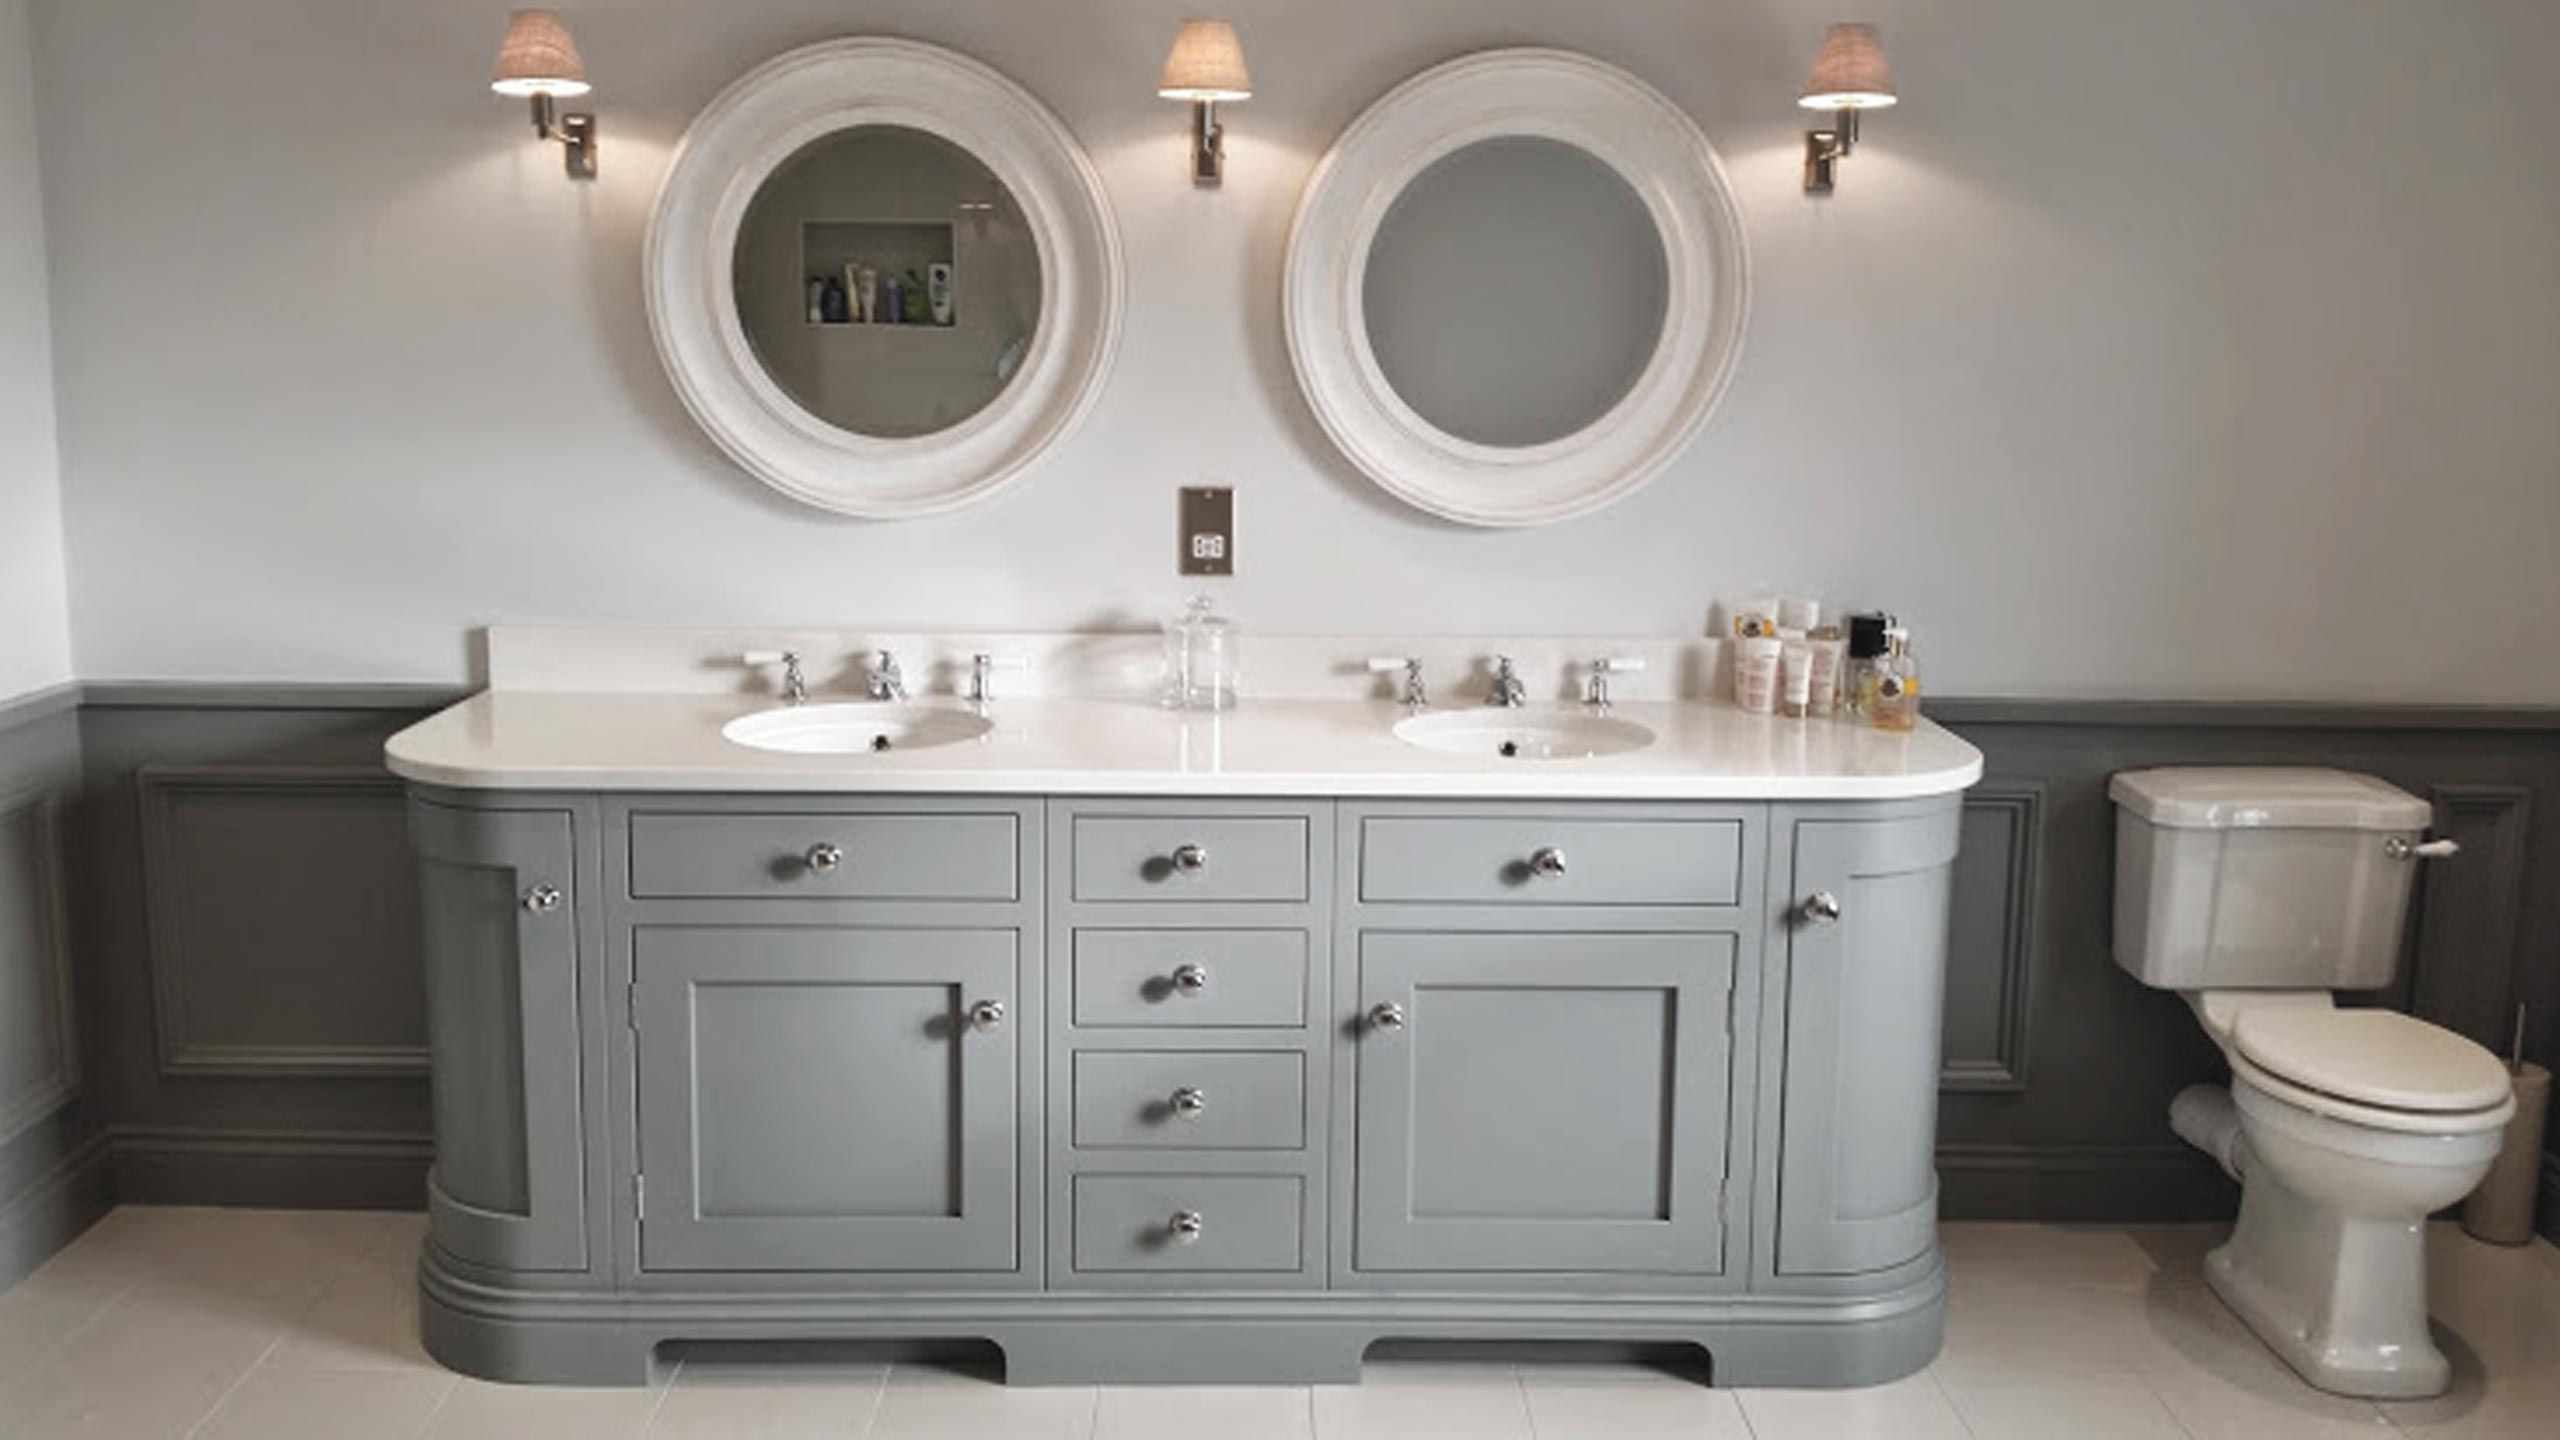 Blackstone Kitchens Bathroom